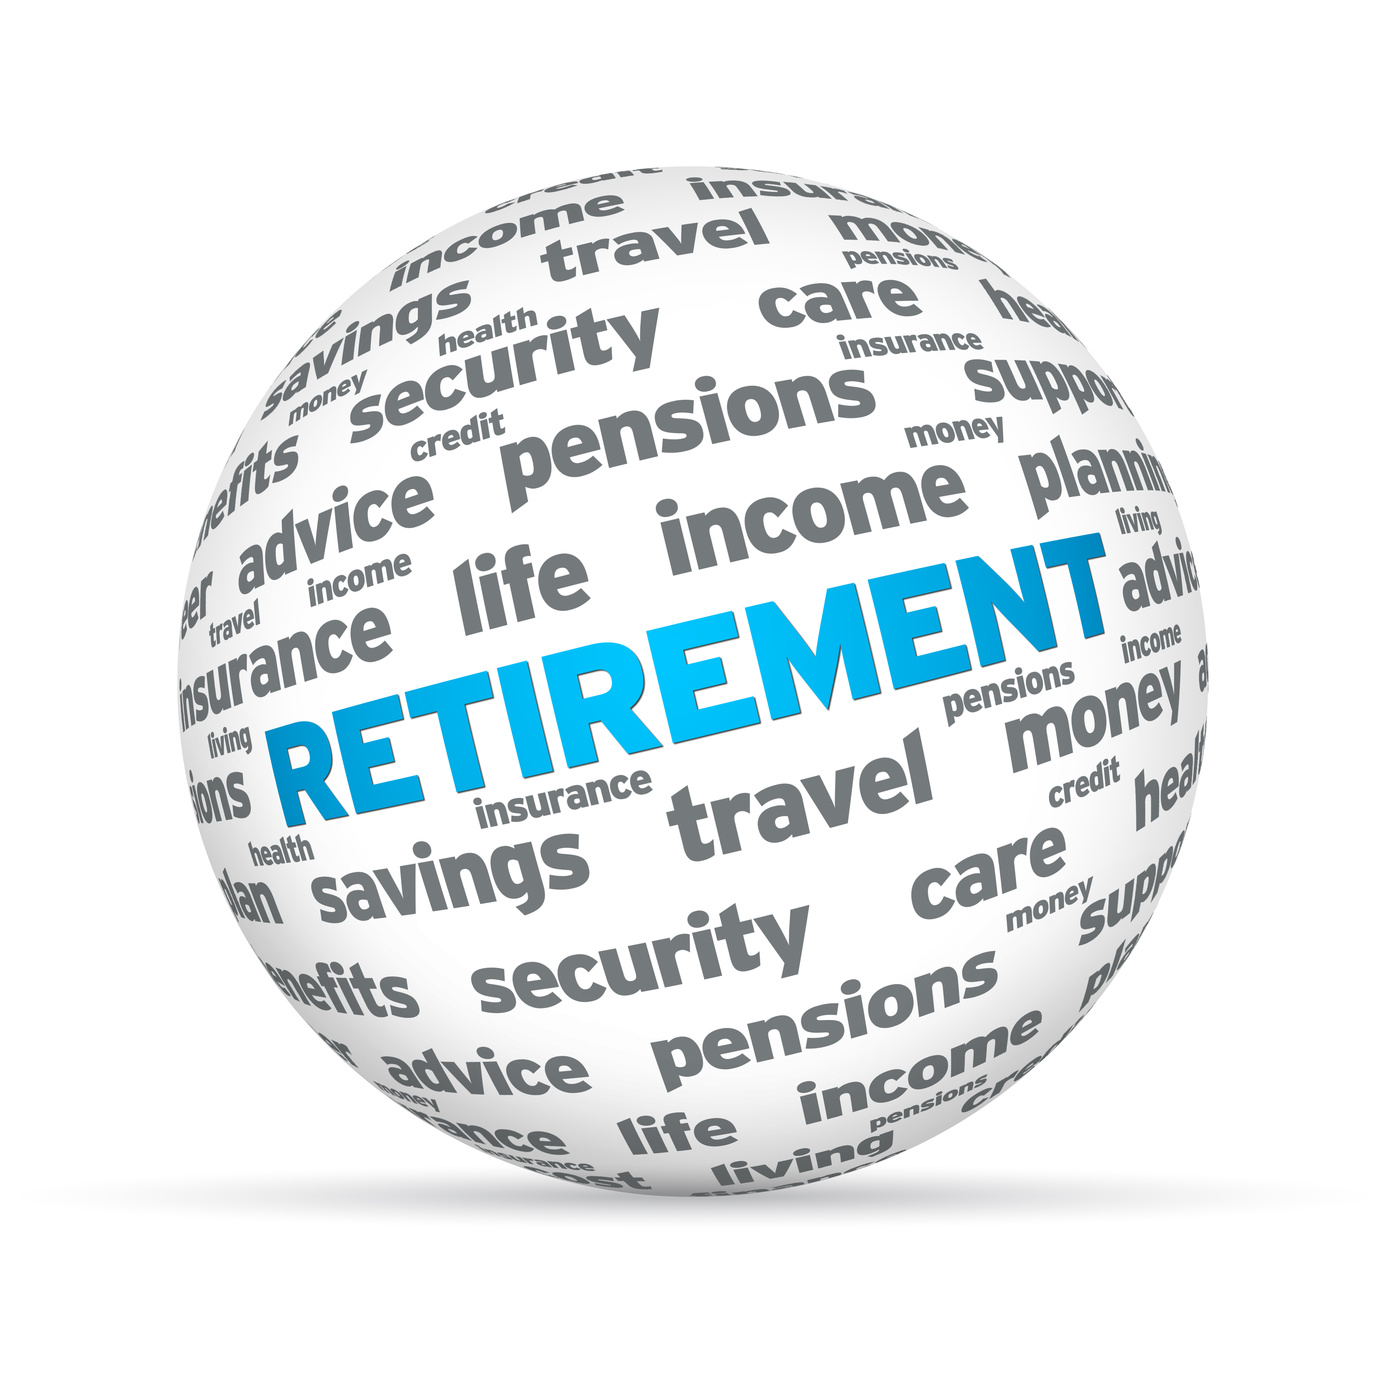 Retirement Planning | Pension Planning and Benefits | Wiseradvisor.com